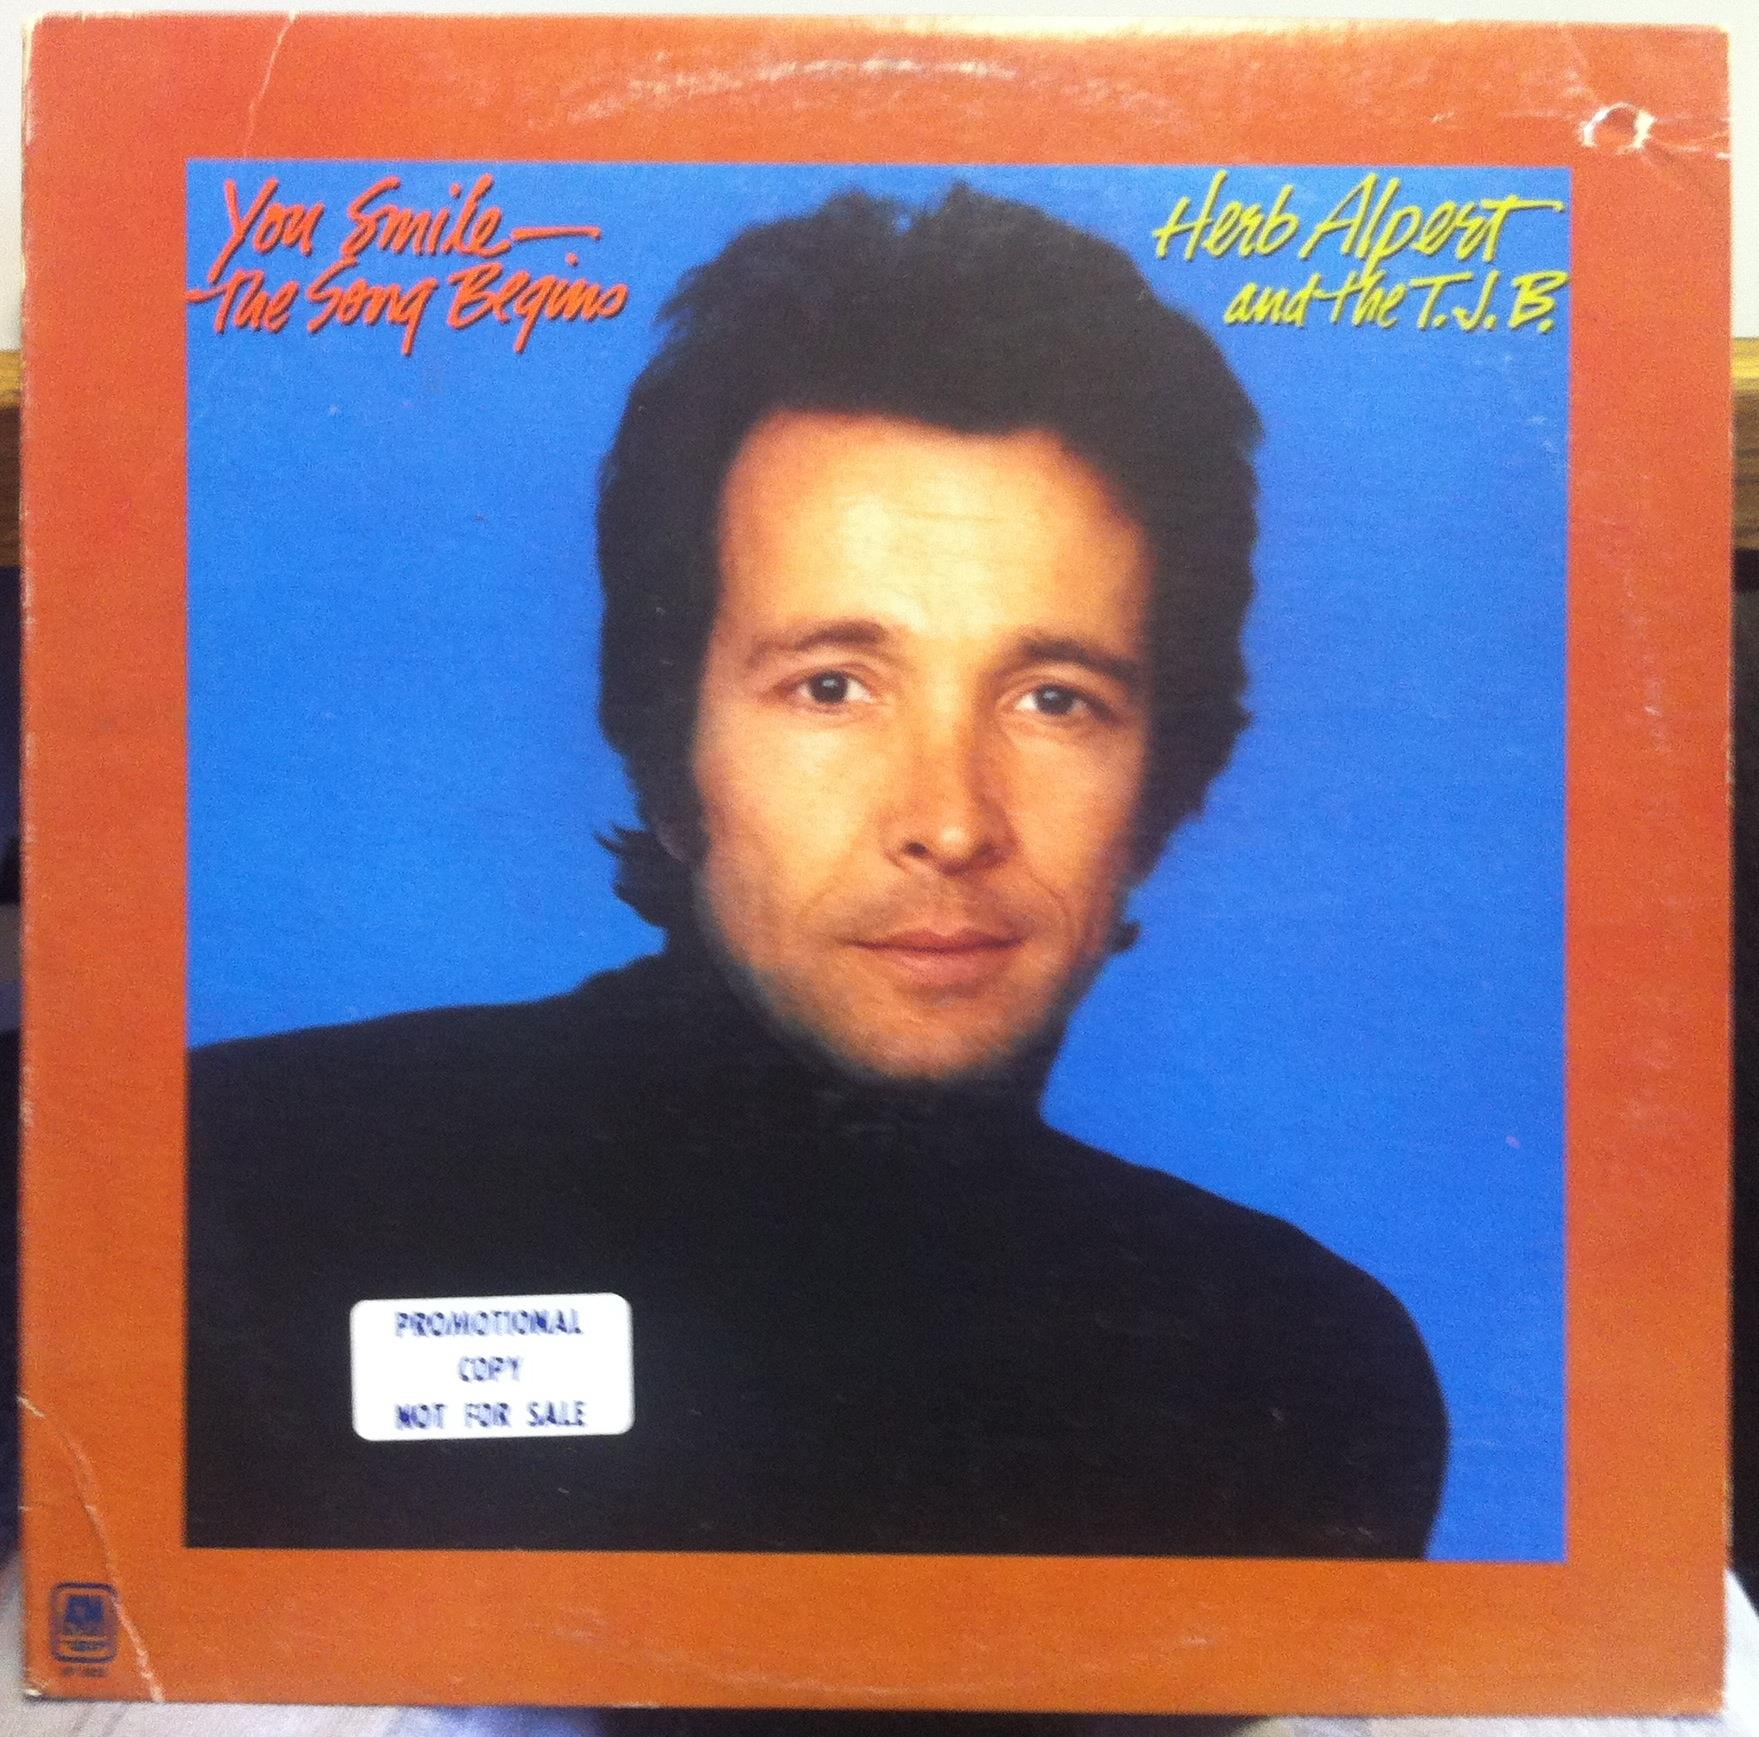 You Smile The Song Begins - HERB ALPERT & THE T.J.B.